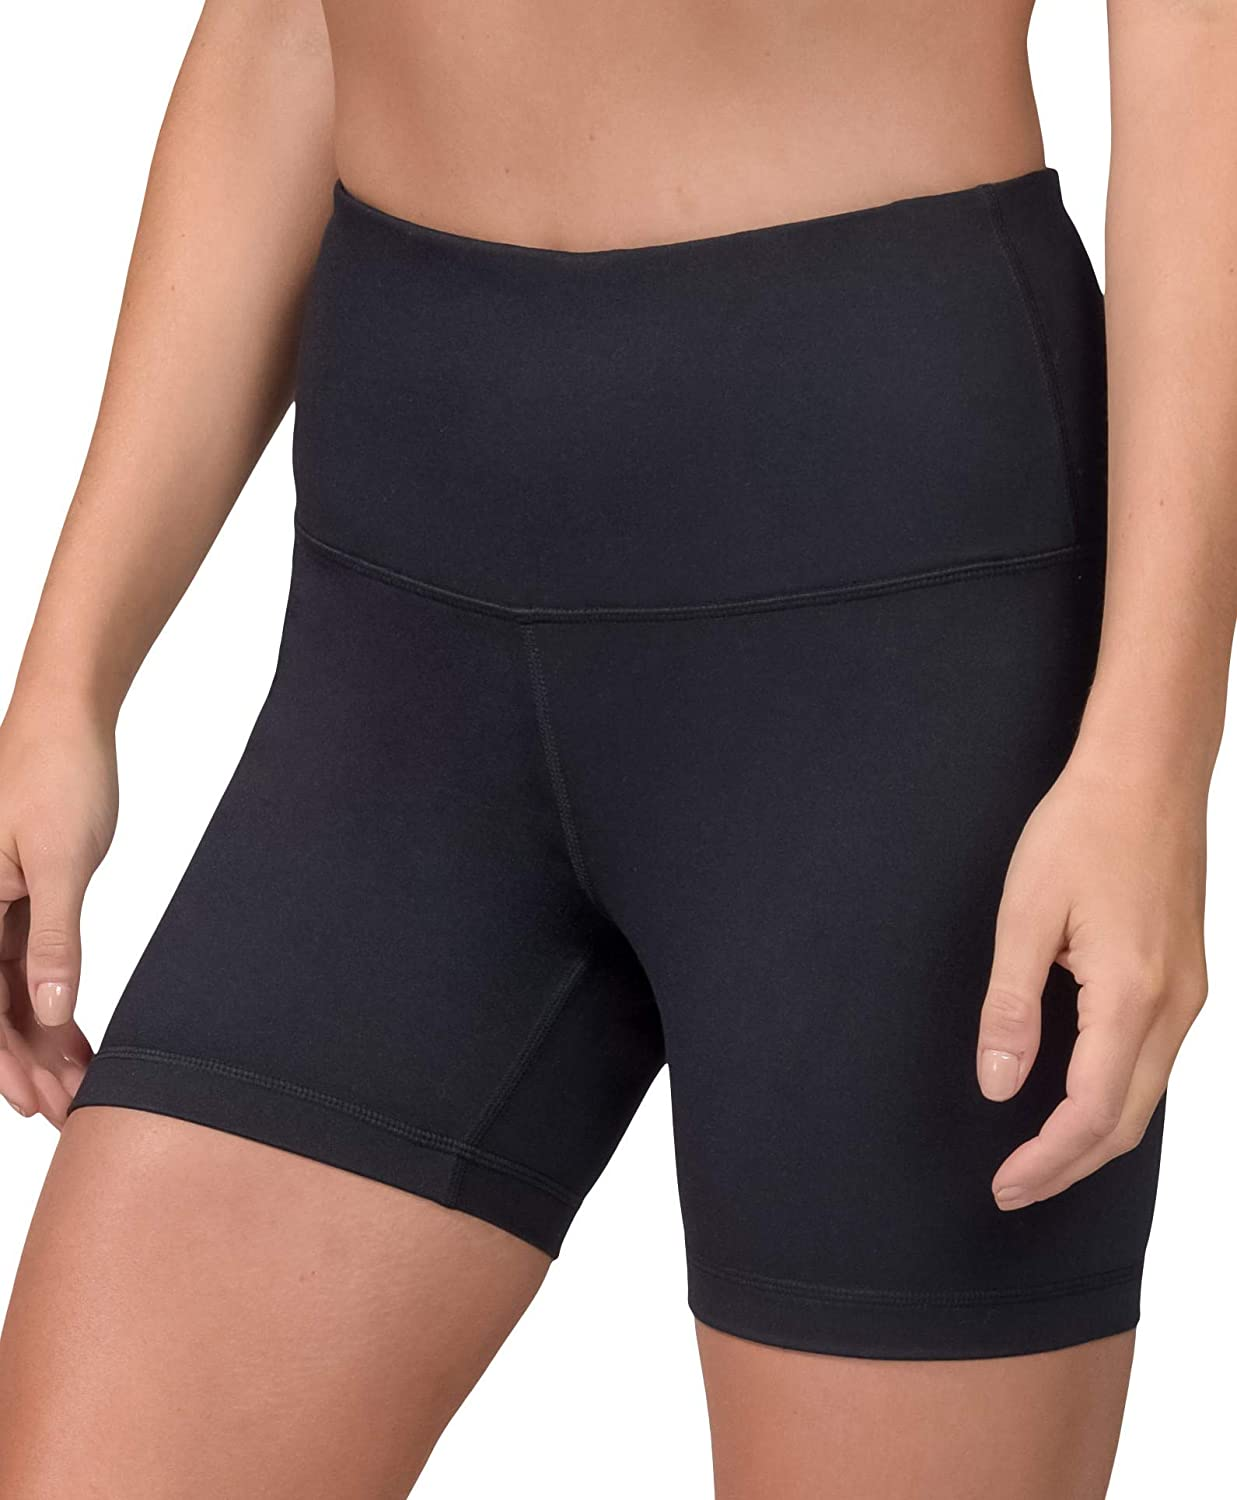 Velocity High Waisted Squat Proof Active Shorts for Women